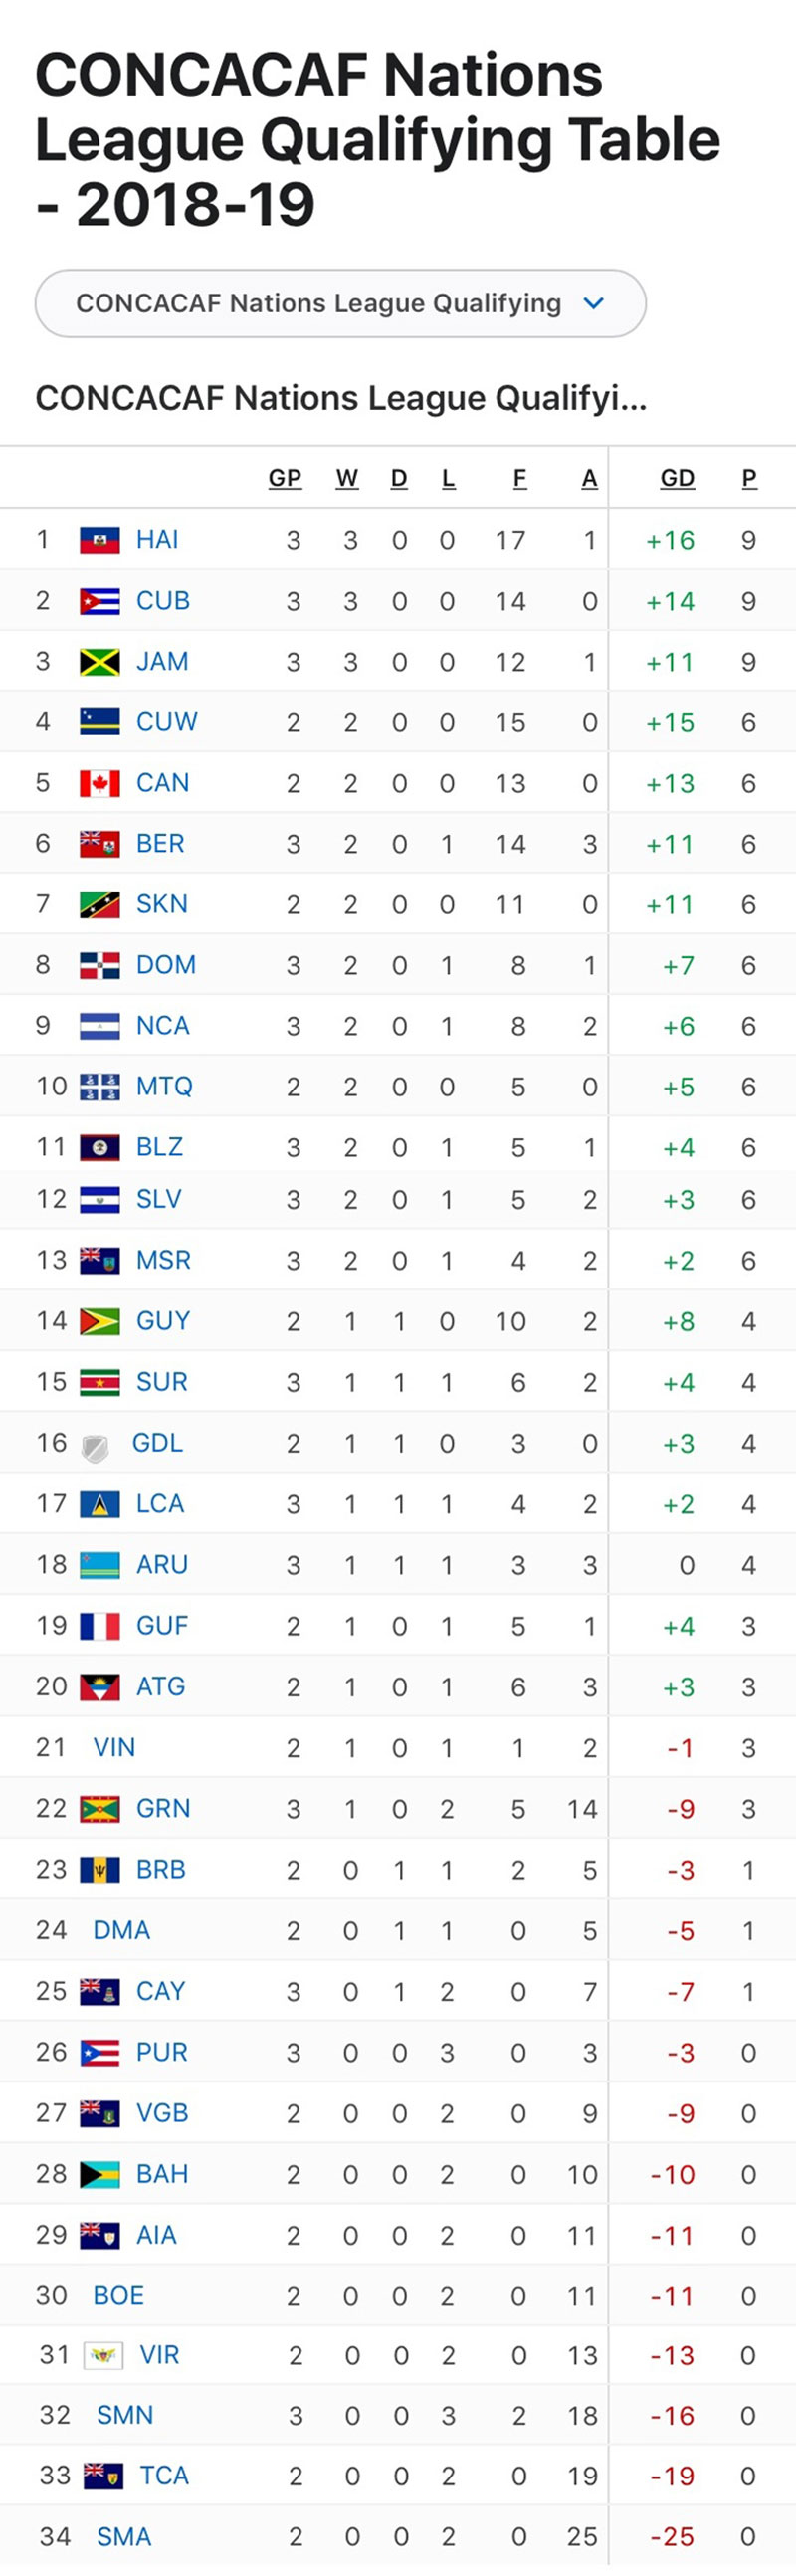 CONCACAF Nations League Qualifying Table 2018-2019 01